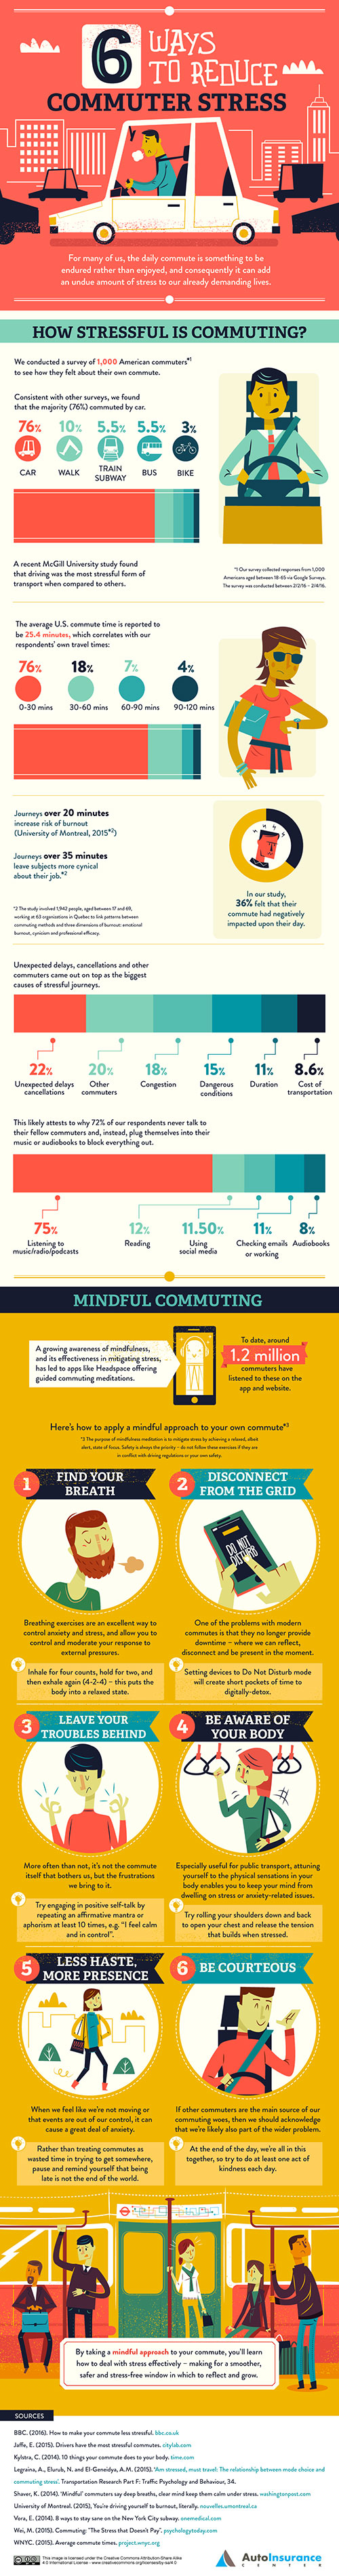 a mindful approach to your commute to make it less stressful